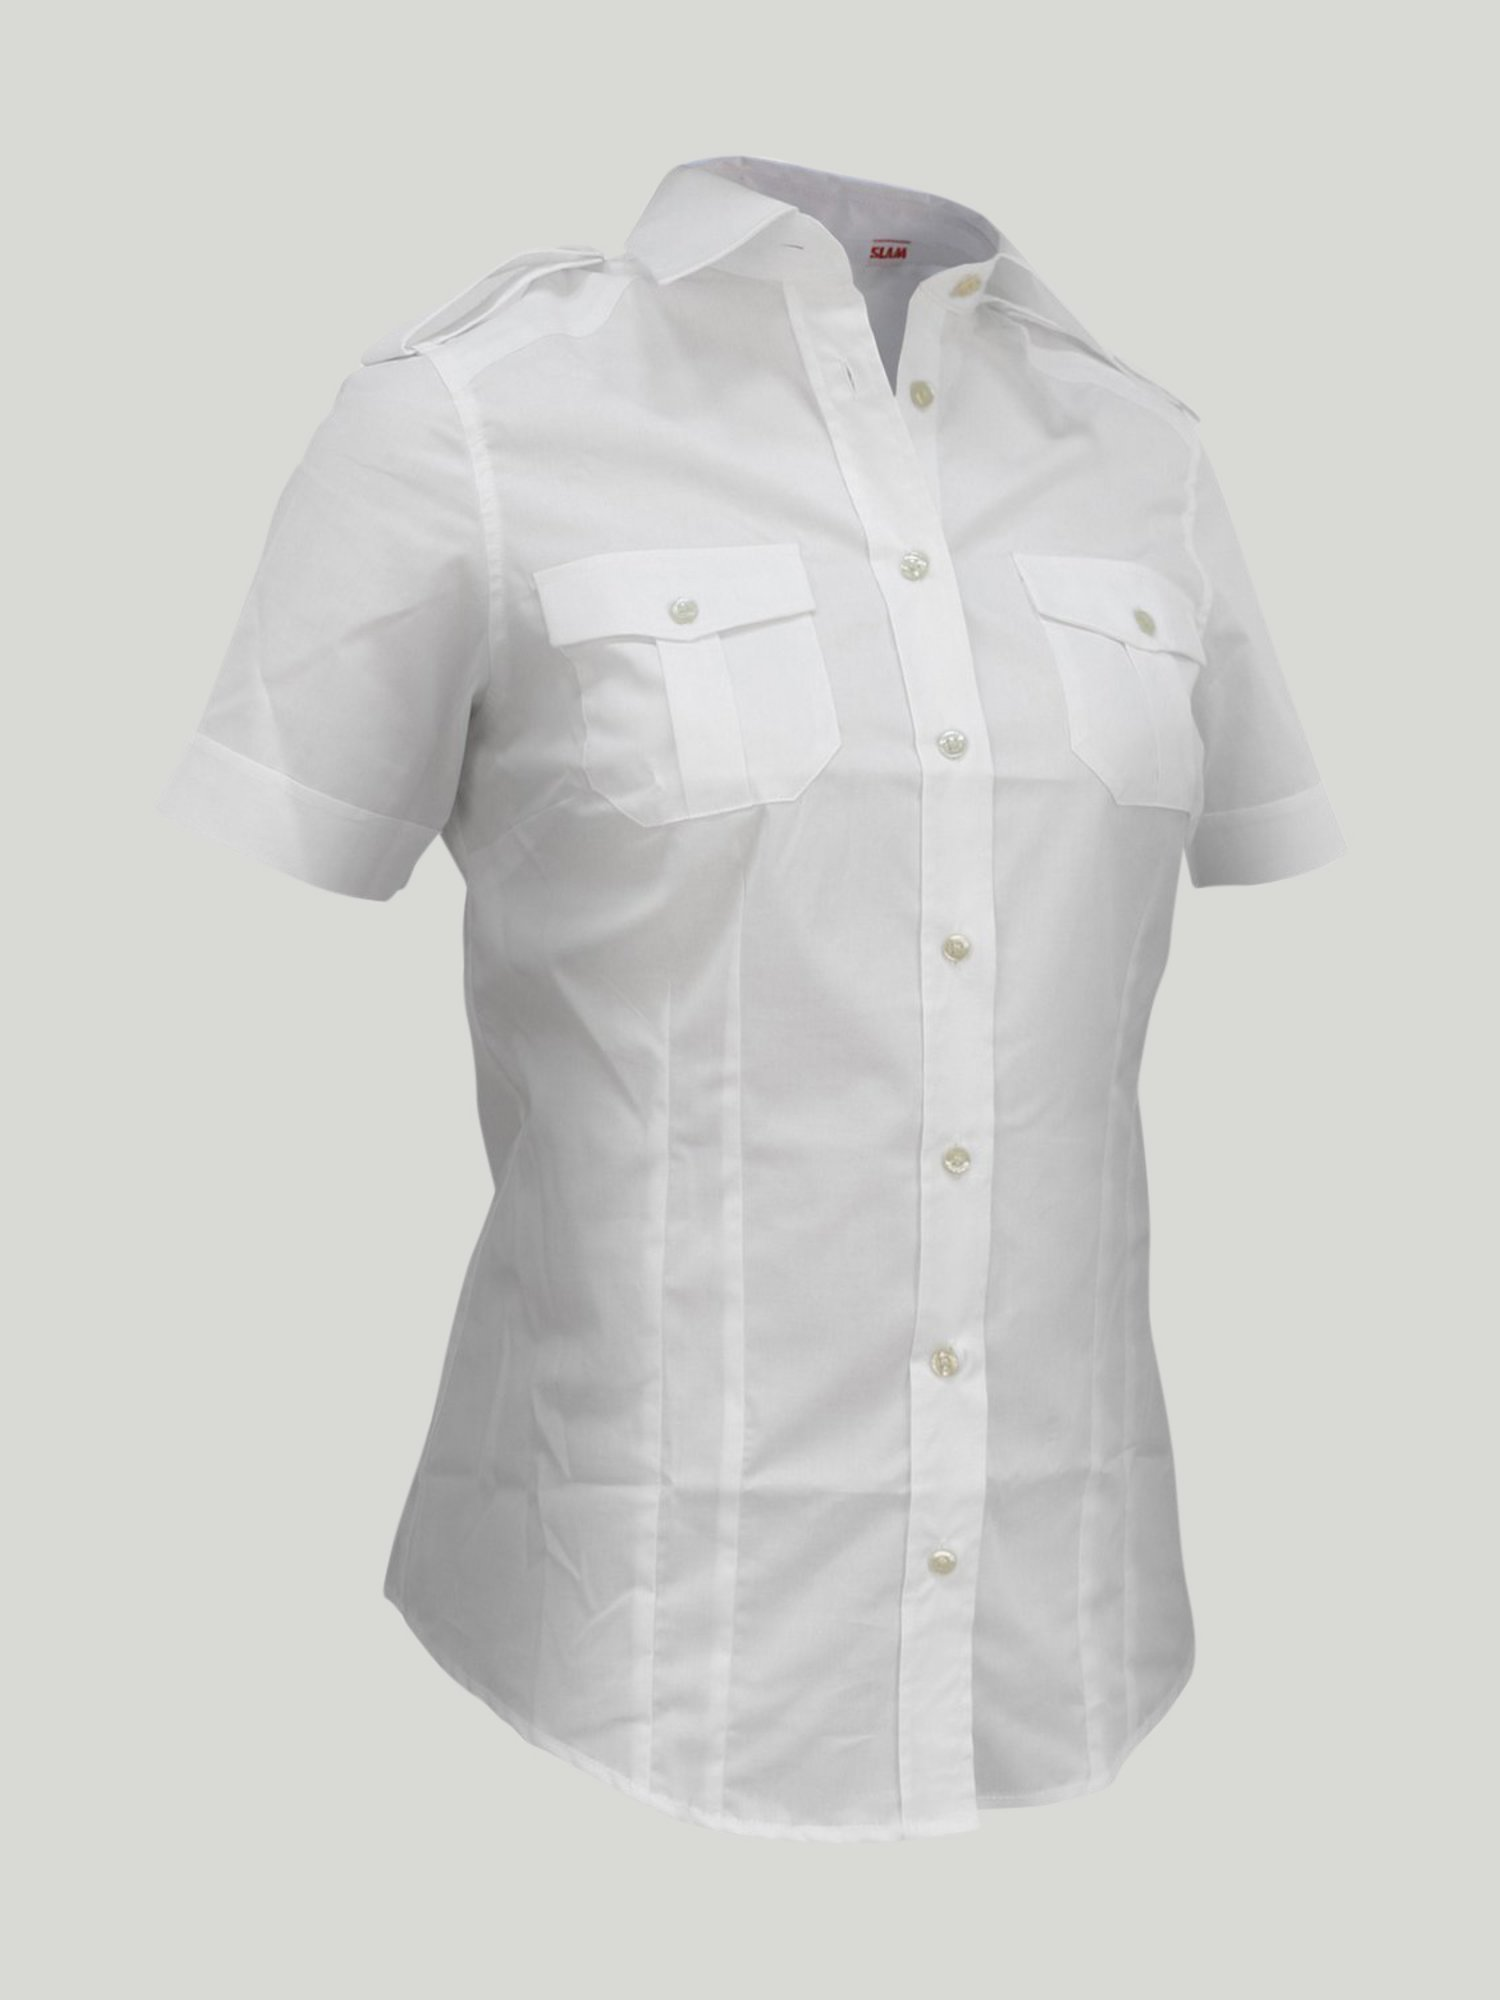 PRE-OWNED Boys Banner White Collared Button Up Shirt Size 26 Inches